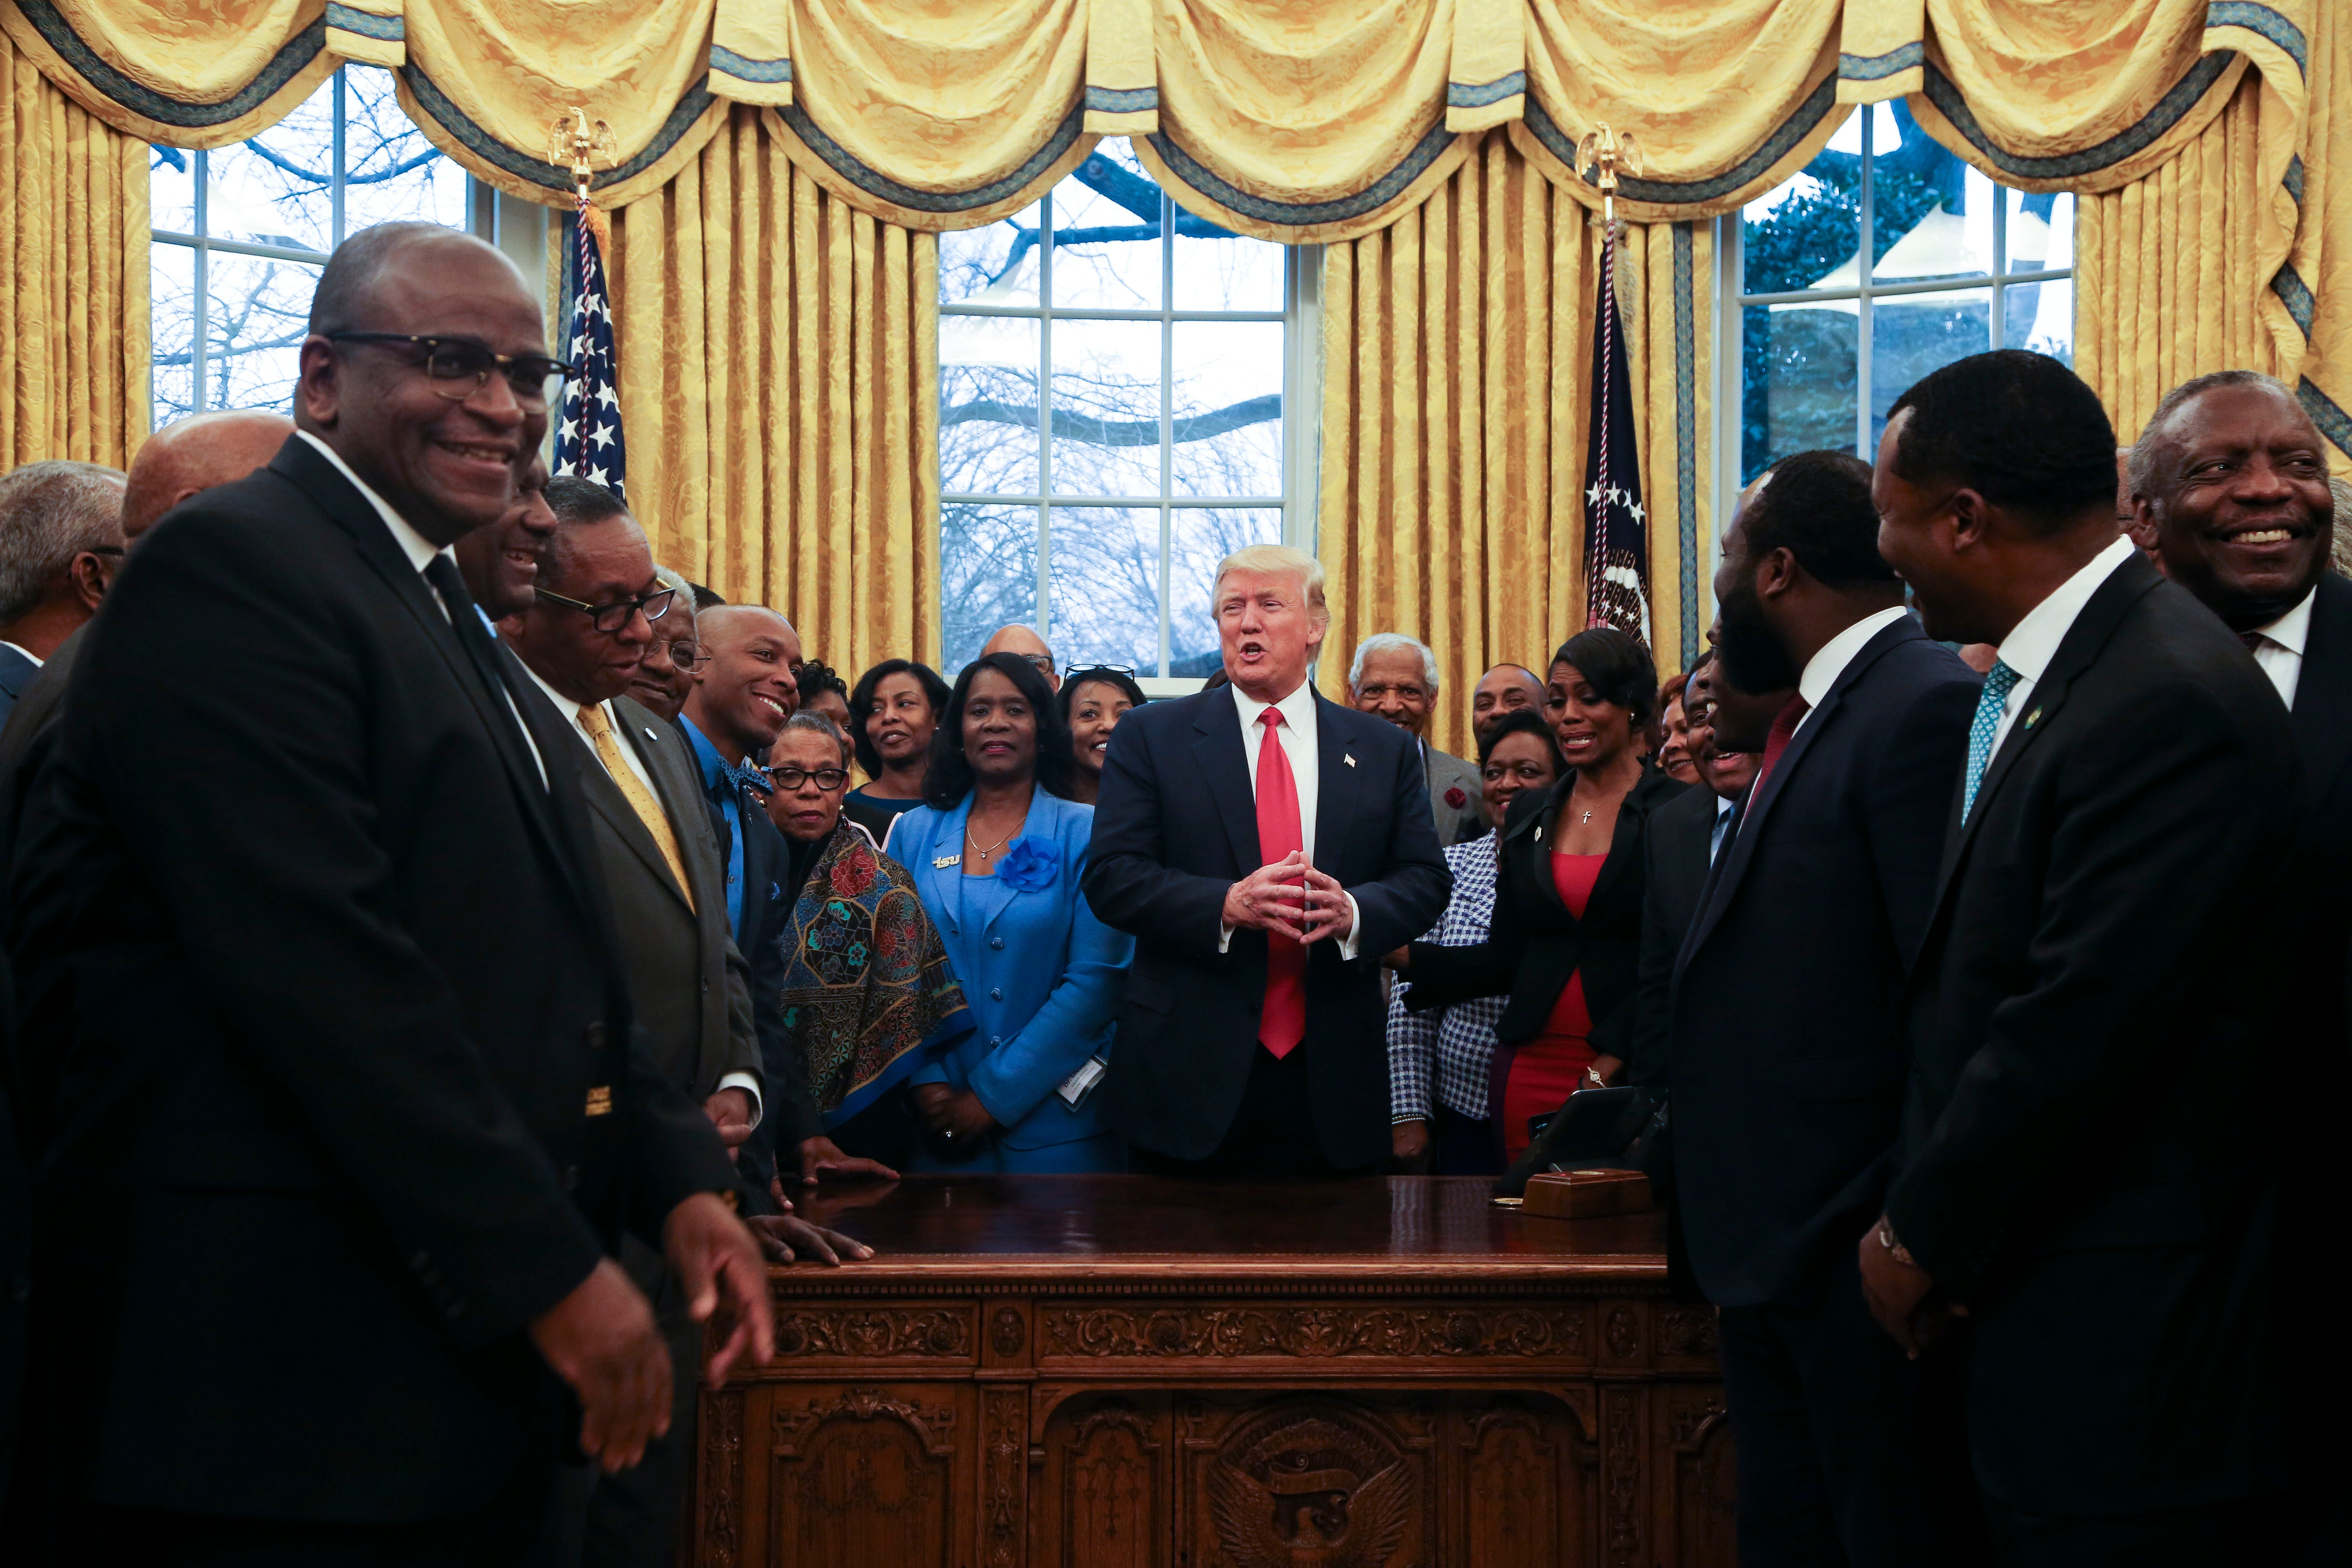 President Trump Meets With Dozens Of HBCU Presidents Ahead Of Signing  Executive Order For The Universities